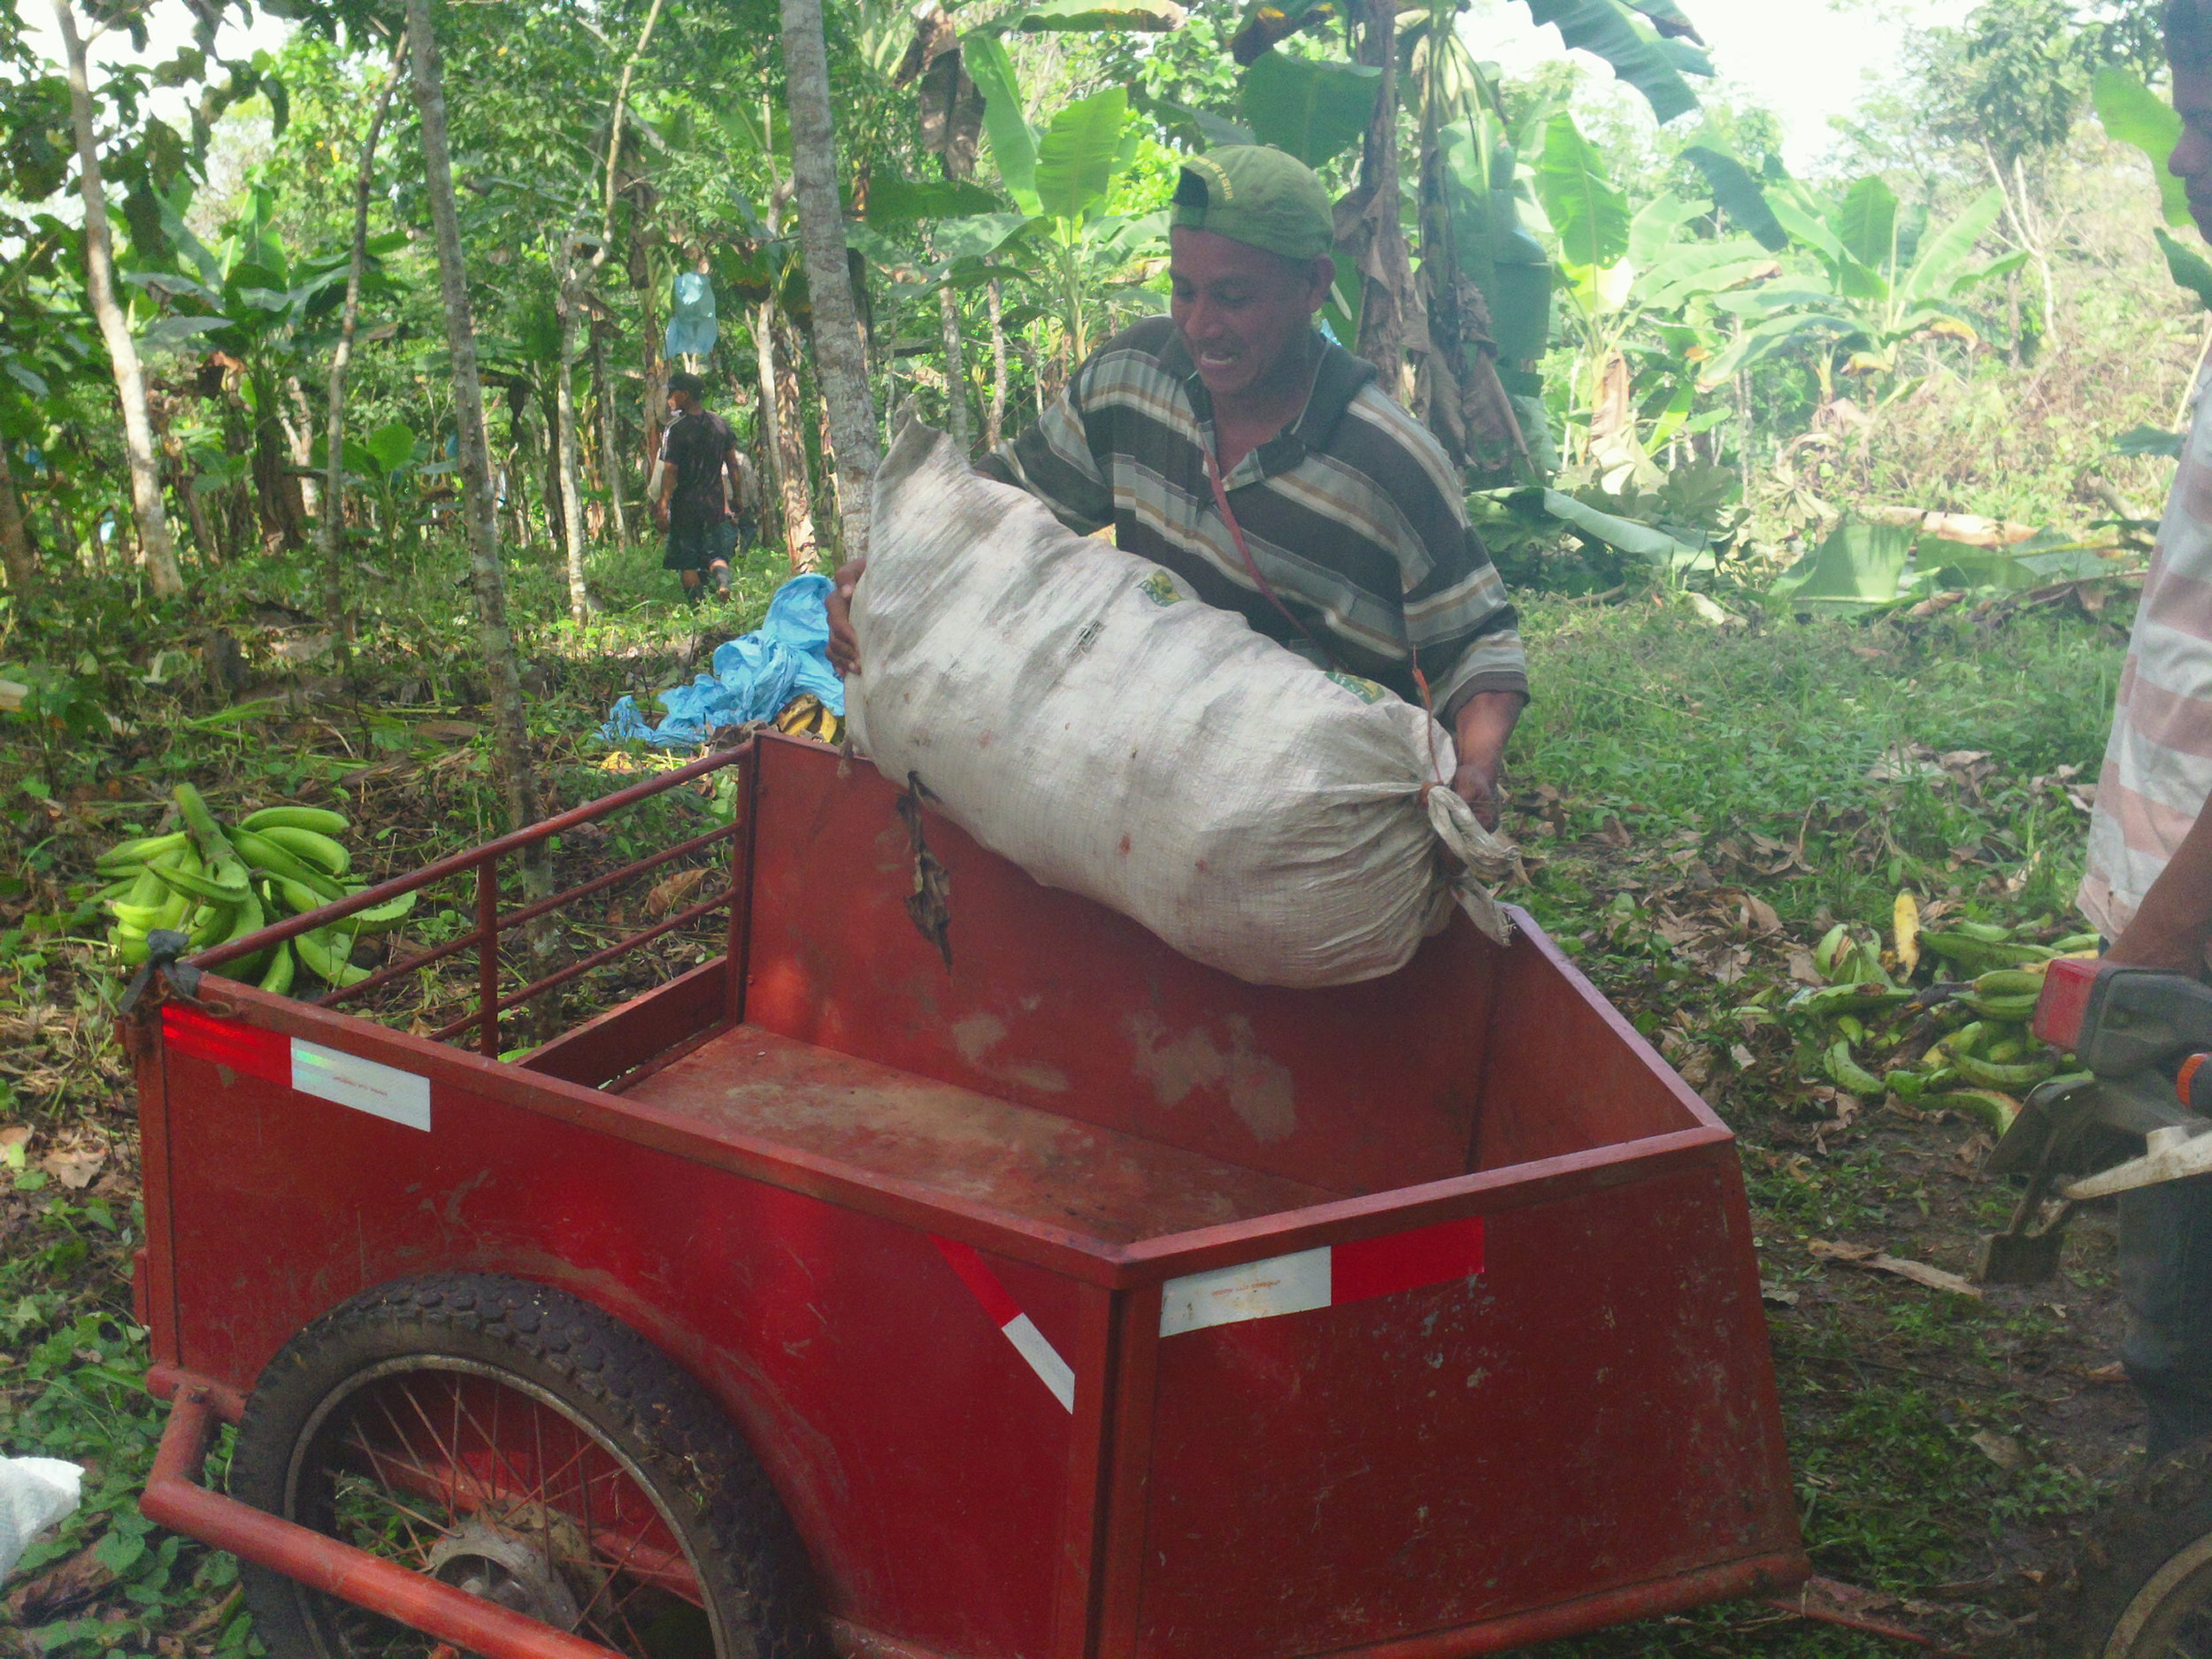 Yem loads a sack of plantains into the cart